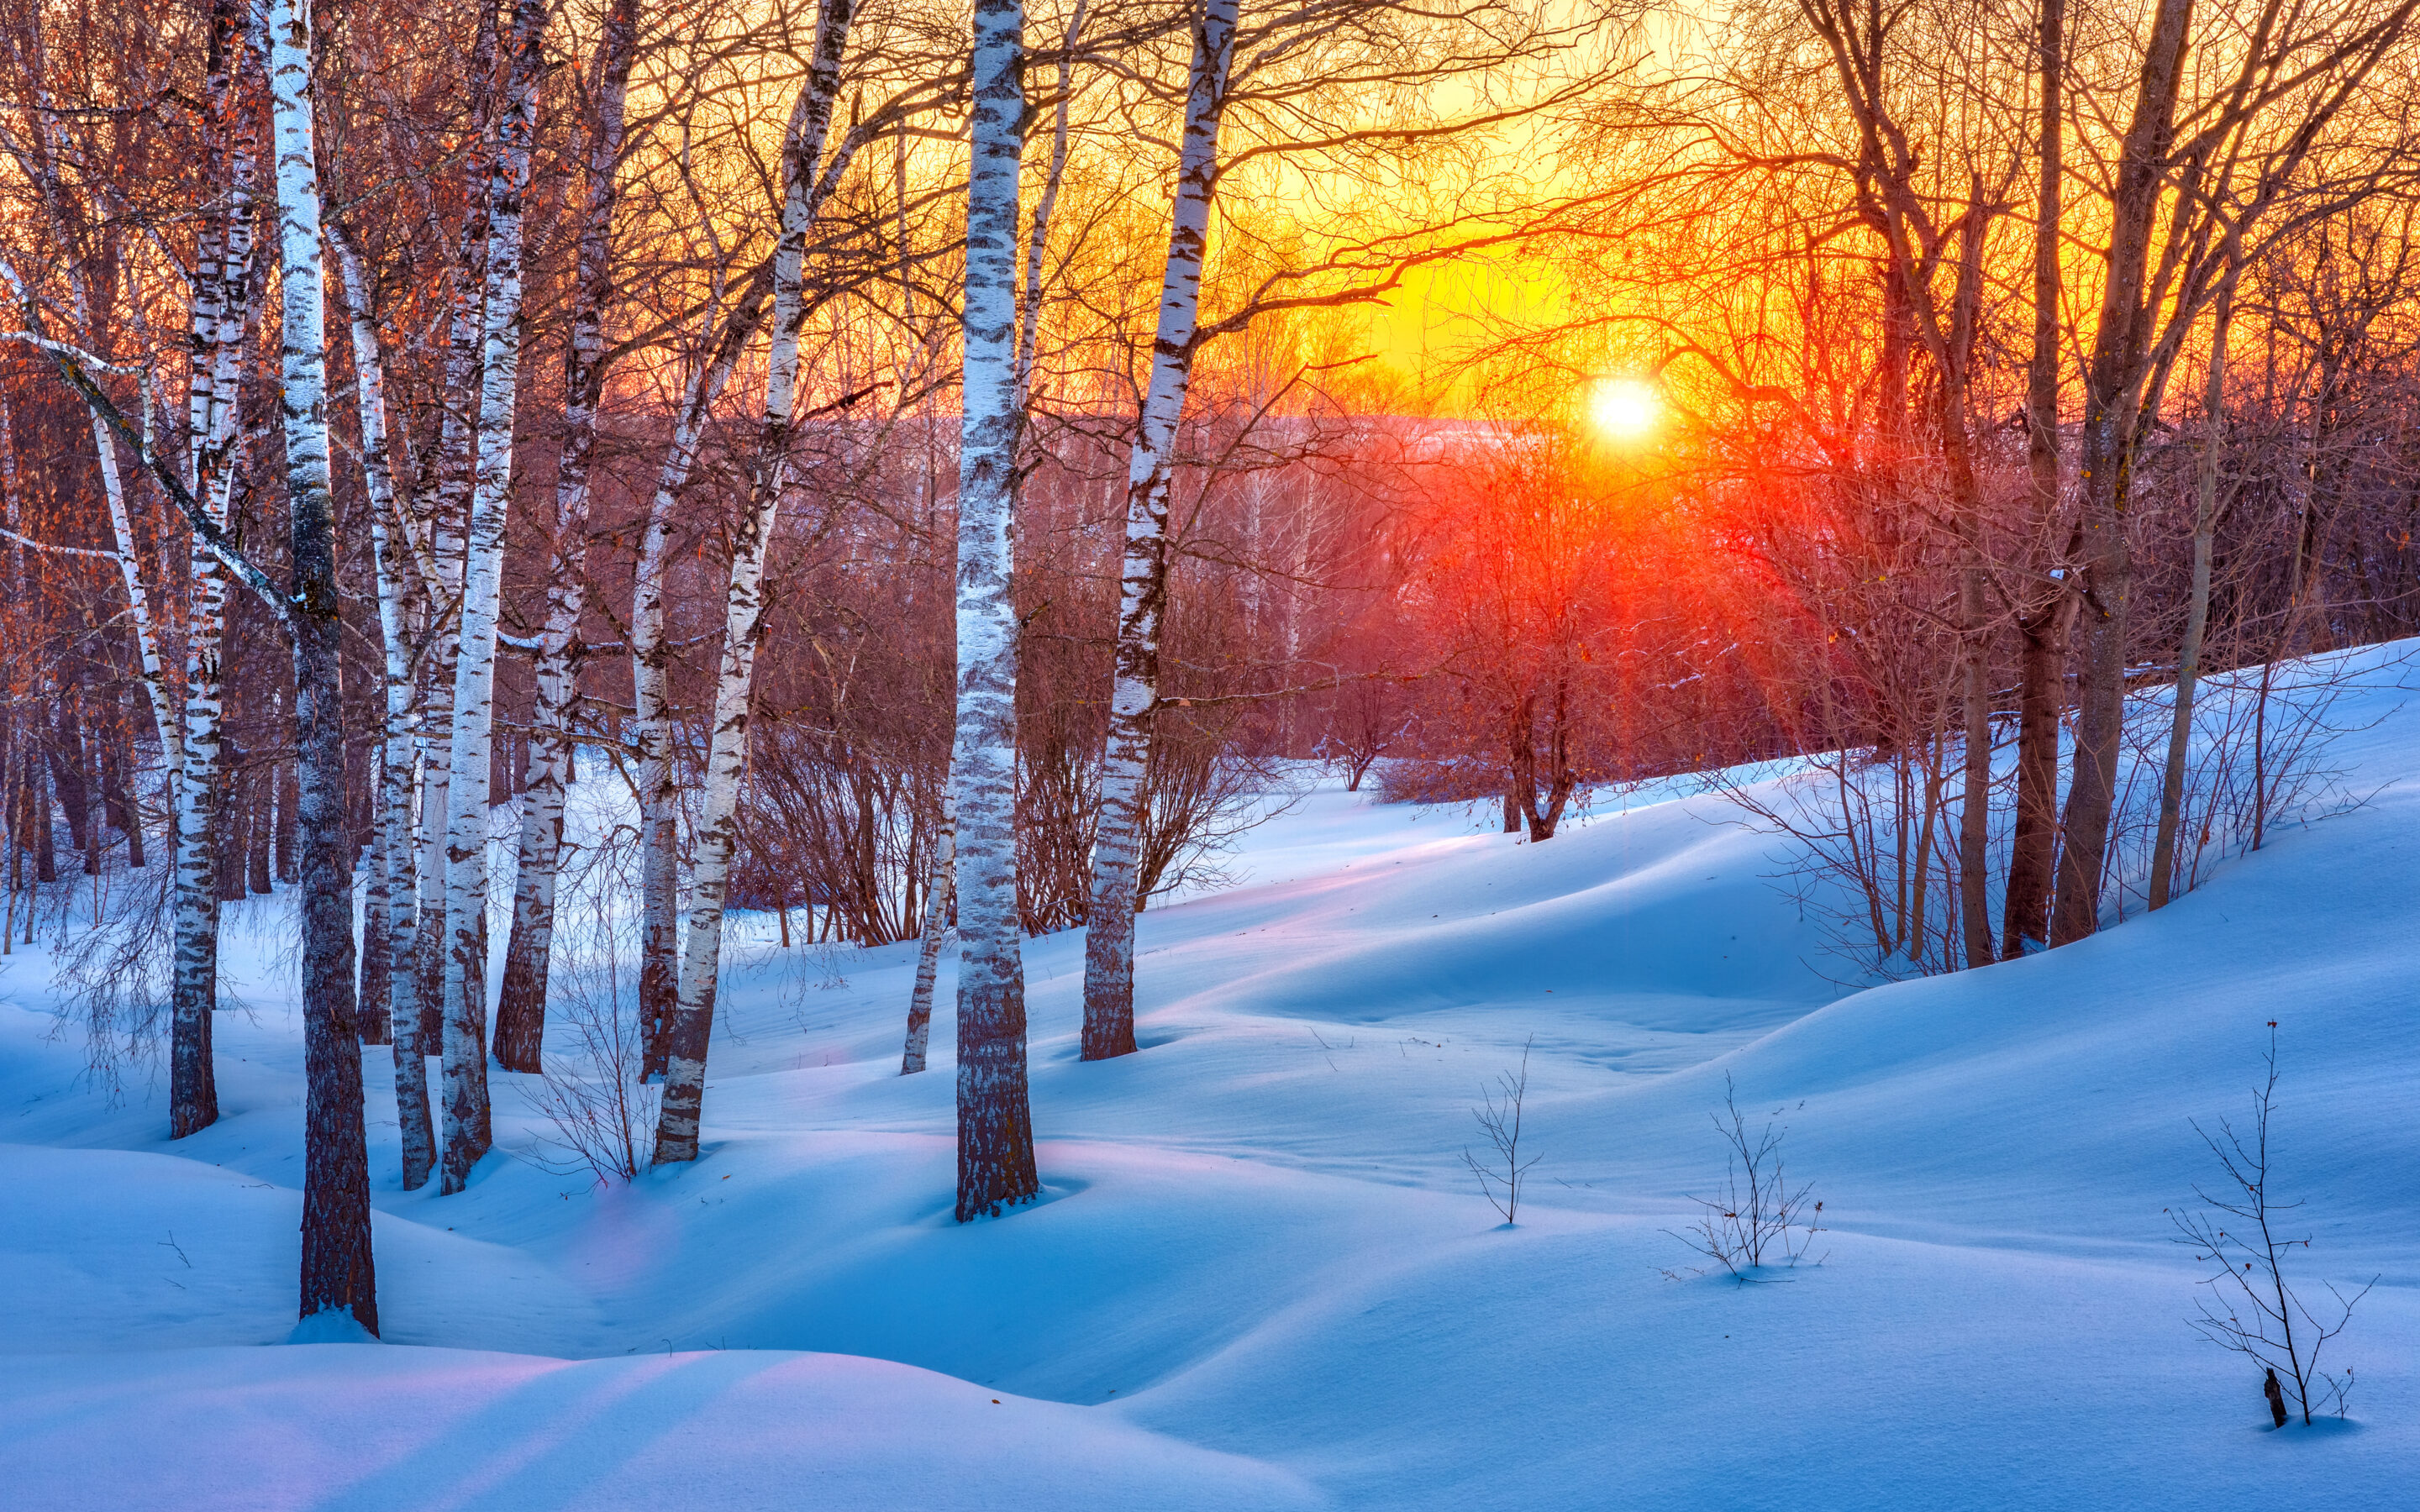 Winter sunset in forest